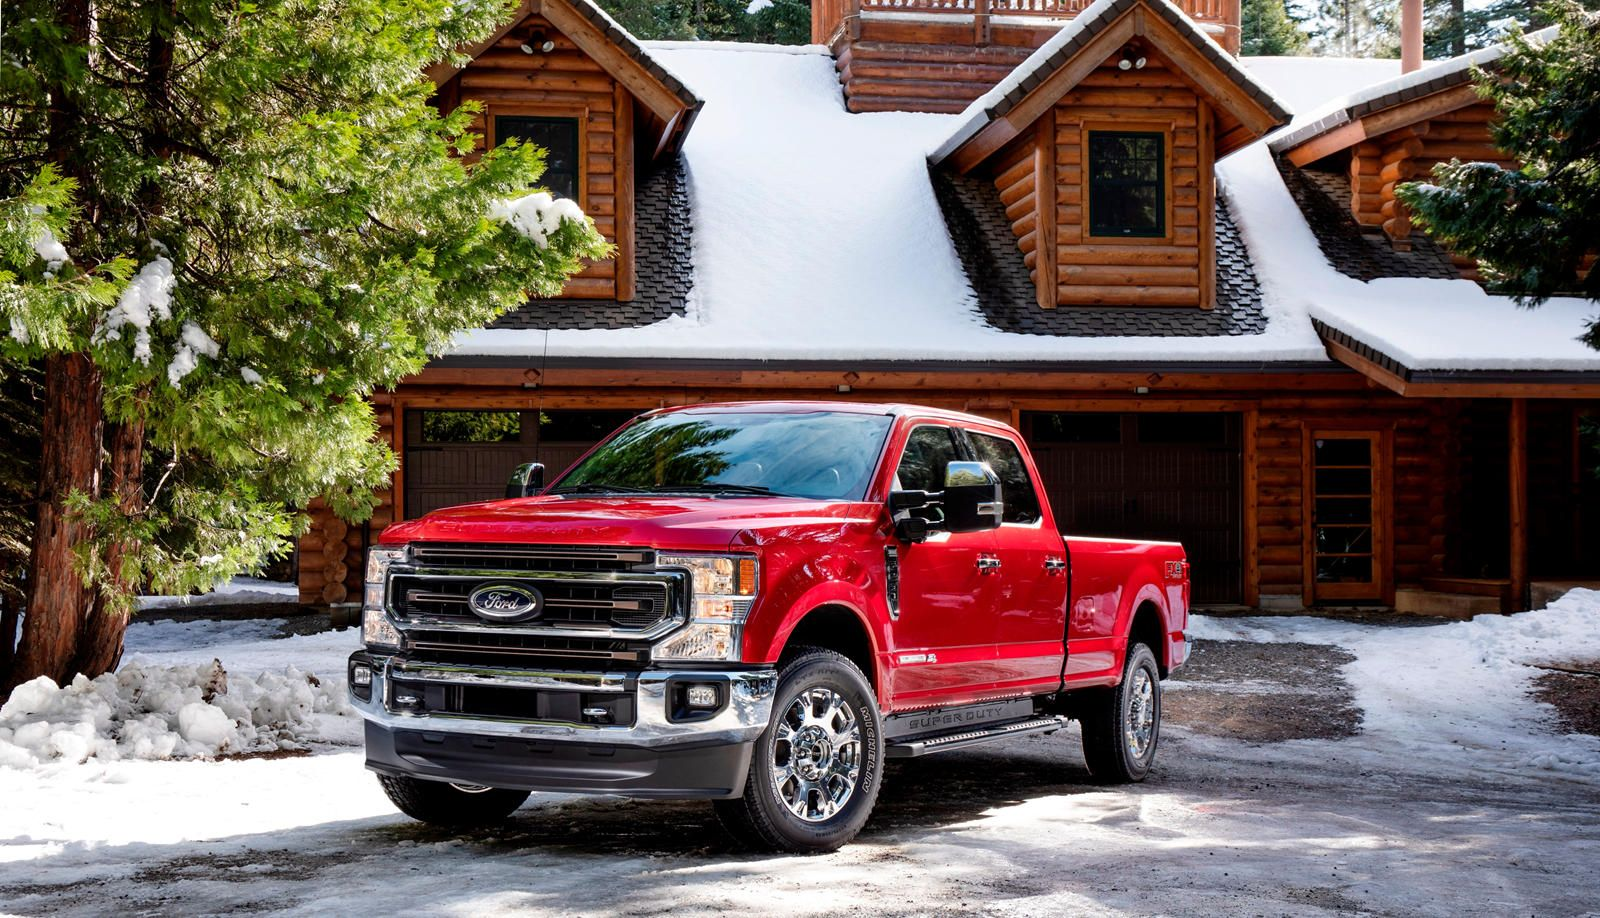 2020 Ford F 250 Super Duty First Drive Review The America Mover If You Need To Tow A Mountain You Should Use A Ford Super In 2020 F250 Ford Super Duty Ford F Series